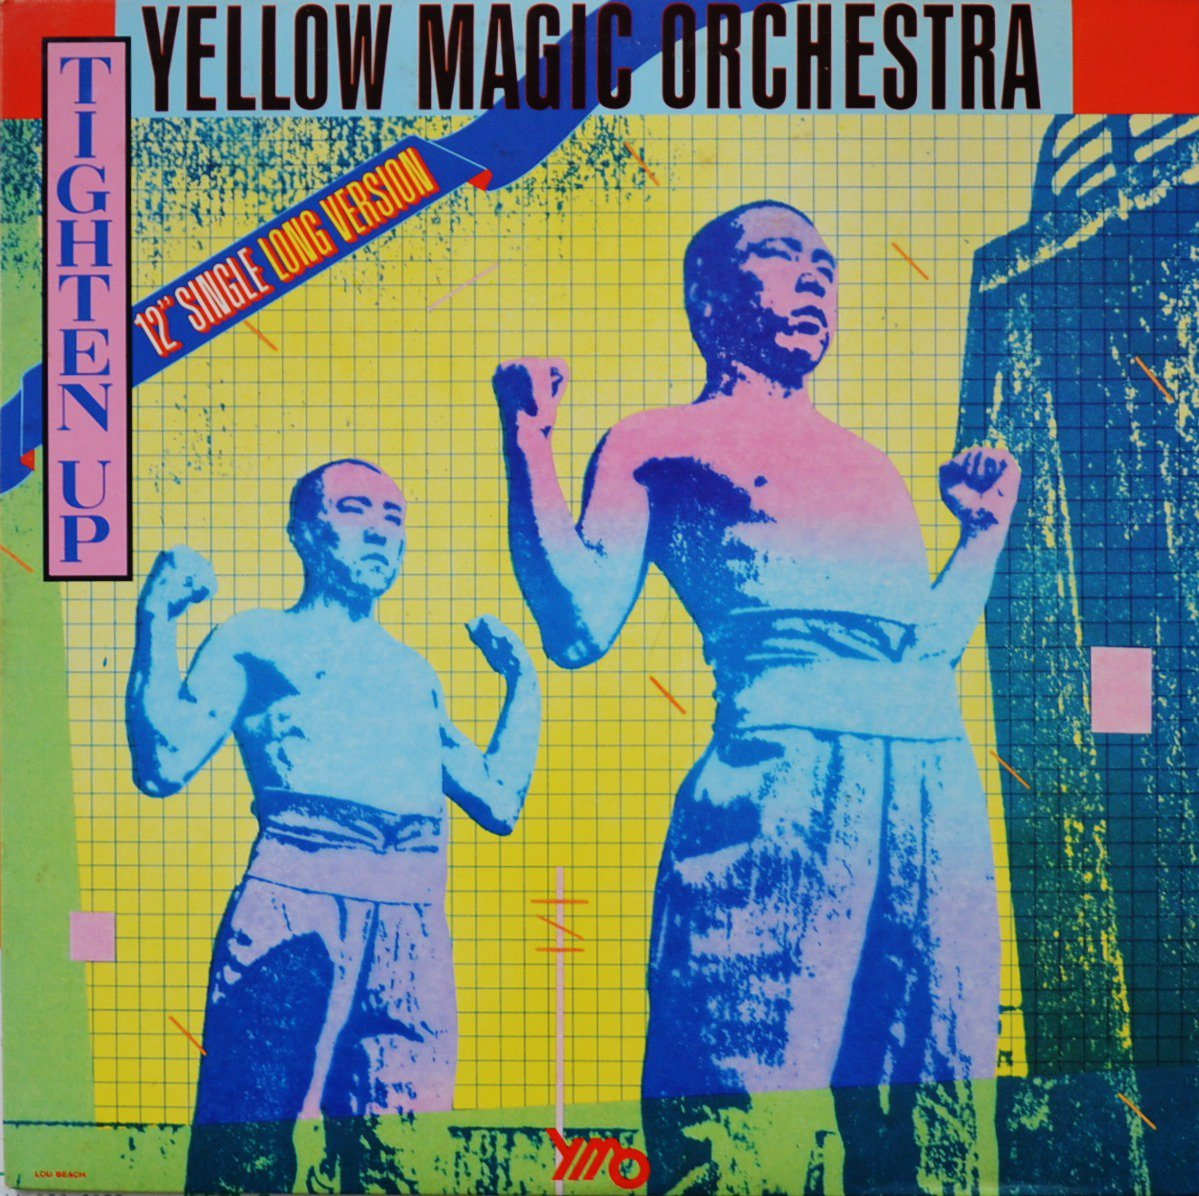 YELLOW MAGIC ORCHESTRA / TIGHTEN UP / RYDEEN (12